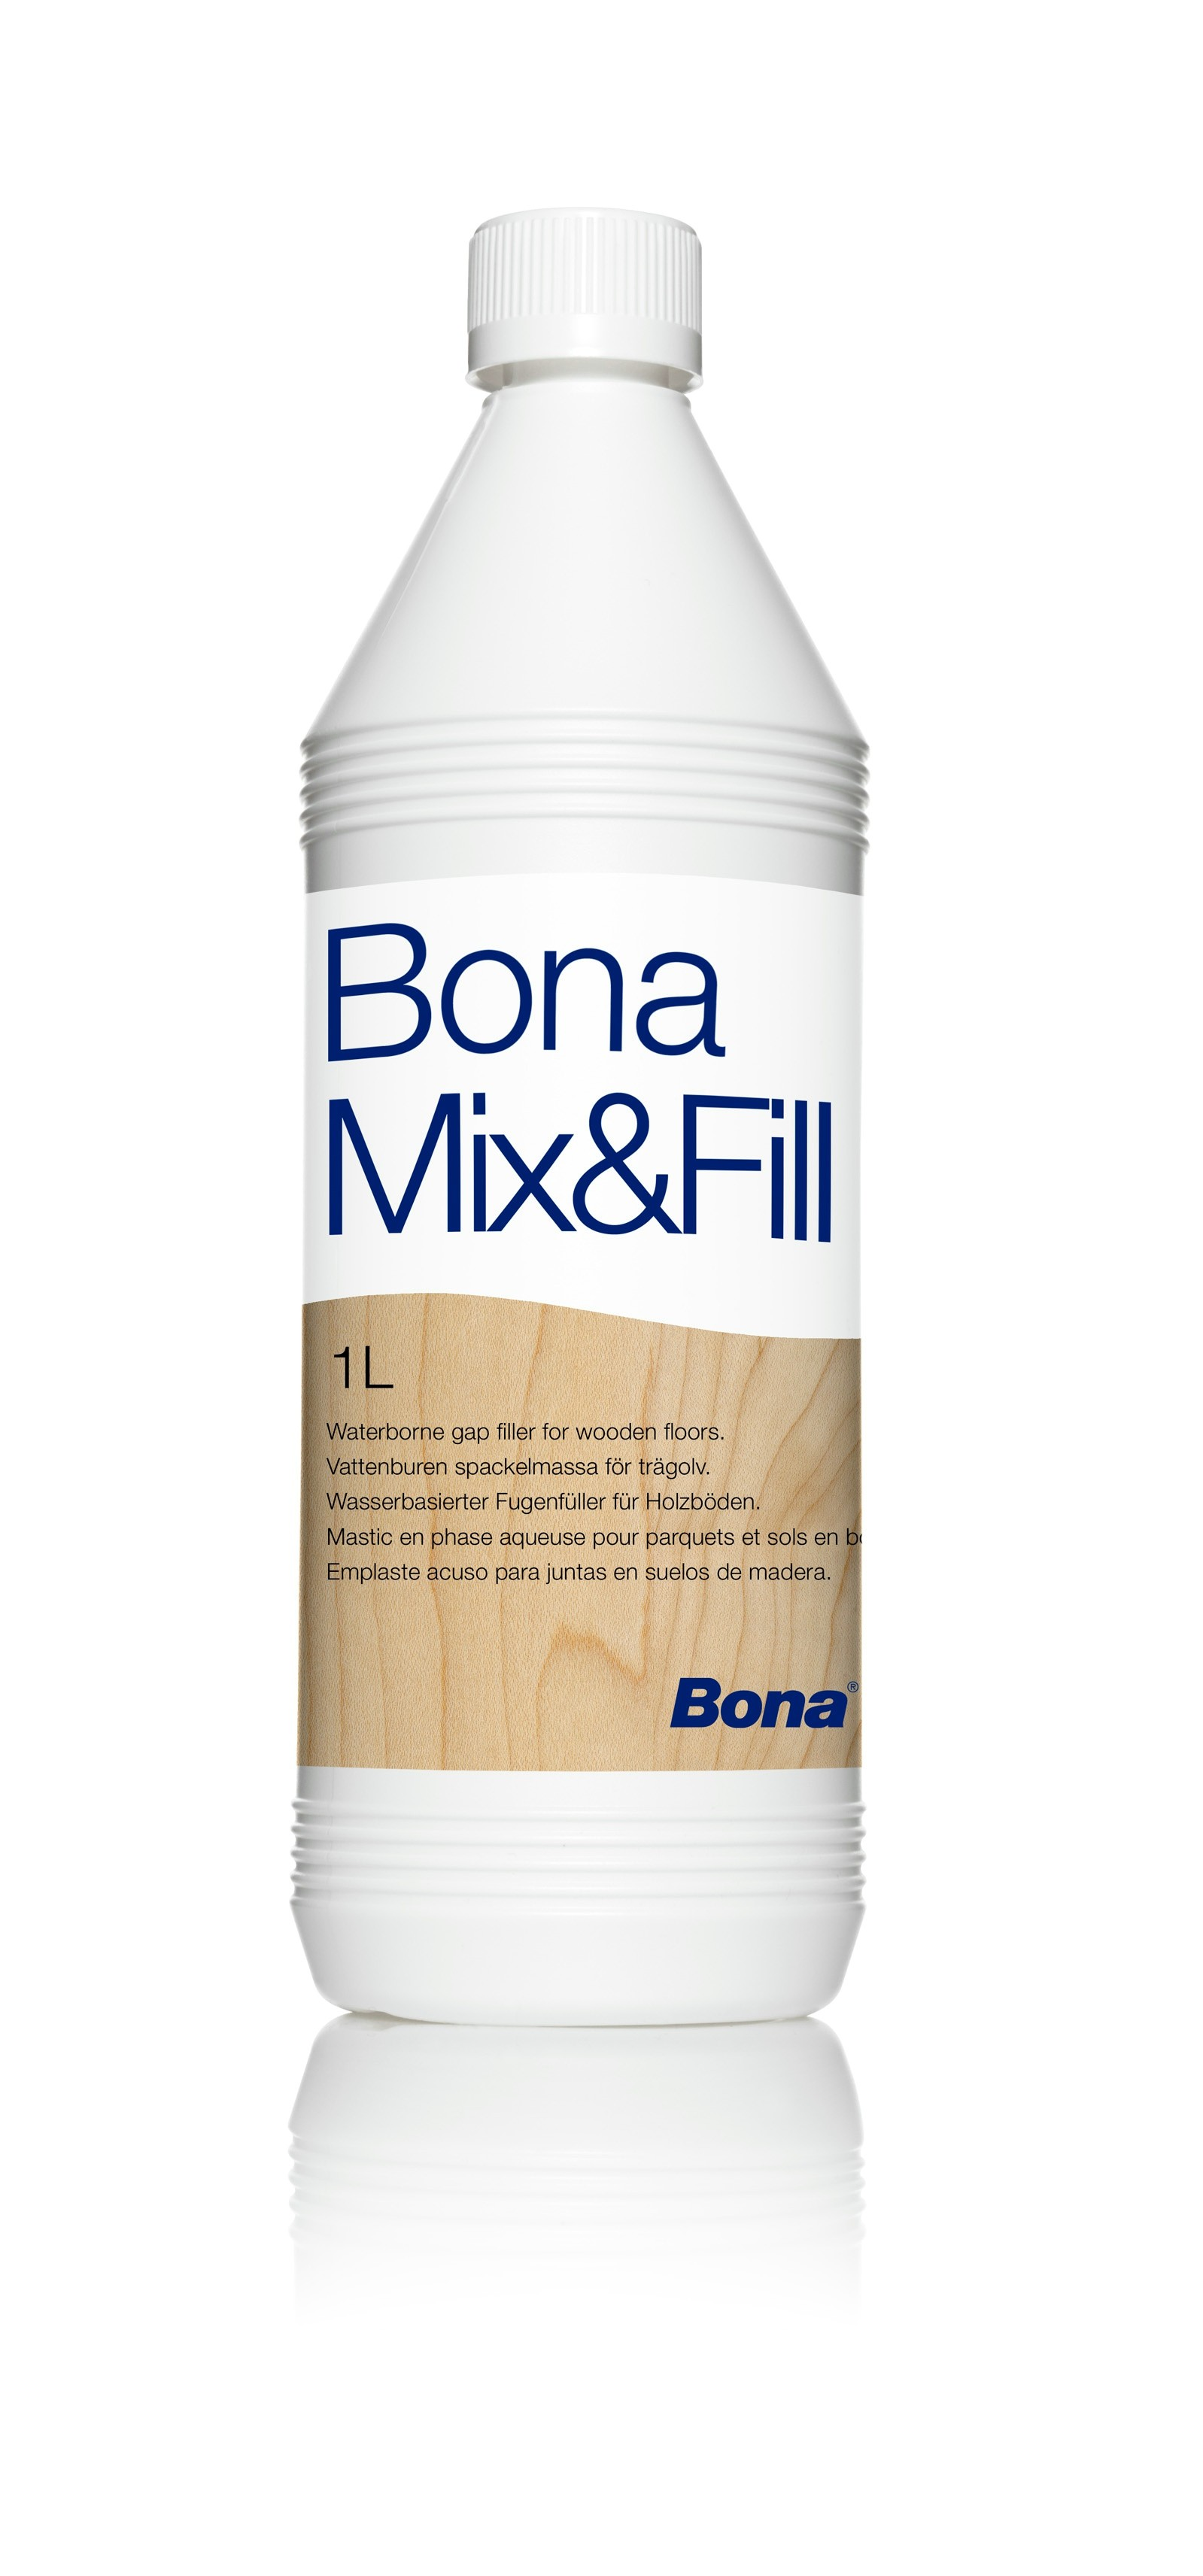 Bona Mix & Fill 1L